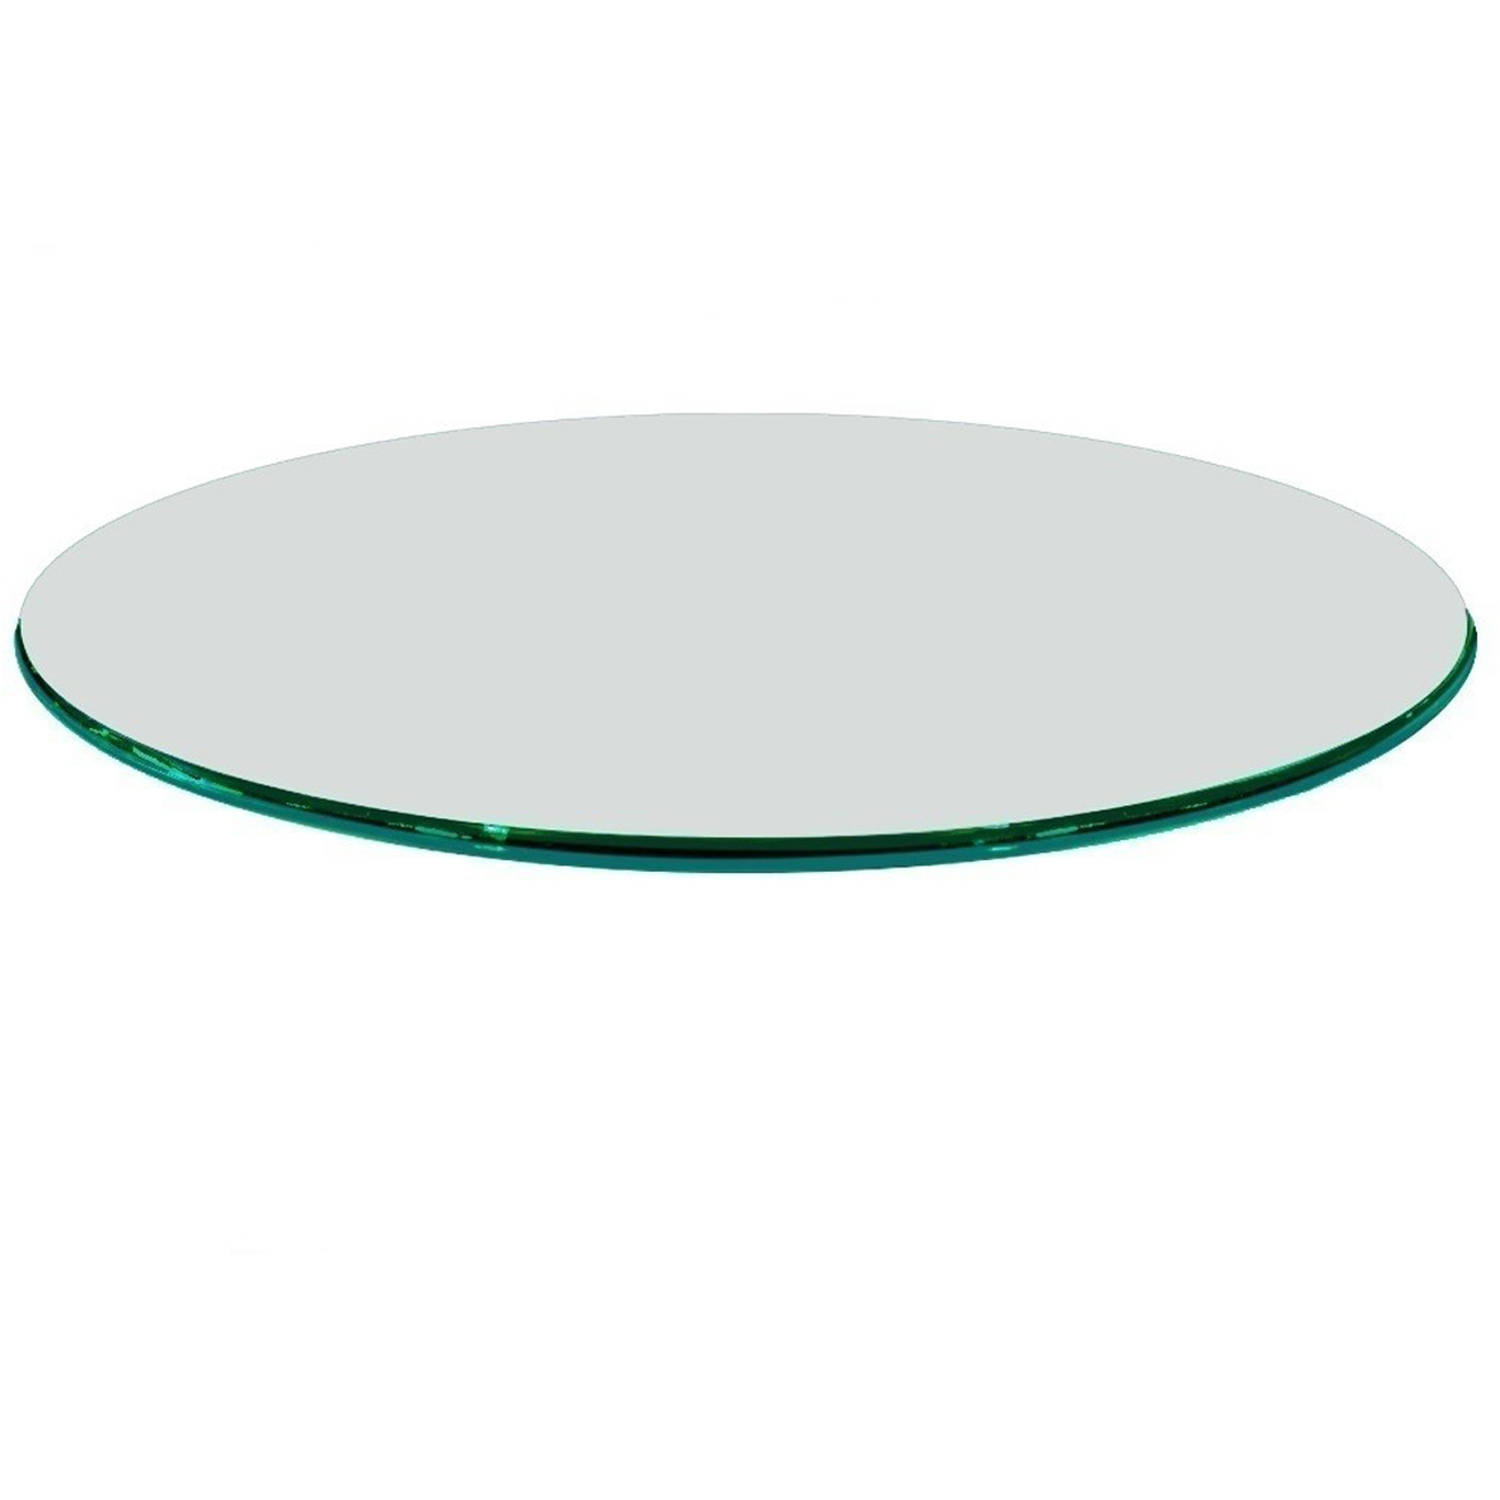 Glass table top 40 round 1 4 thick flat polish tempered for 13 inch round glass table top